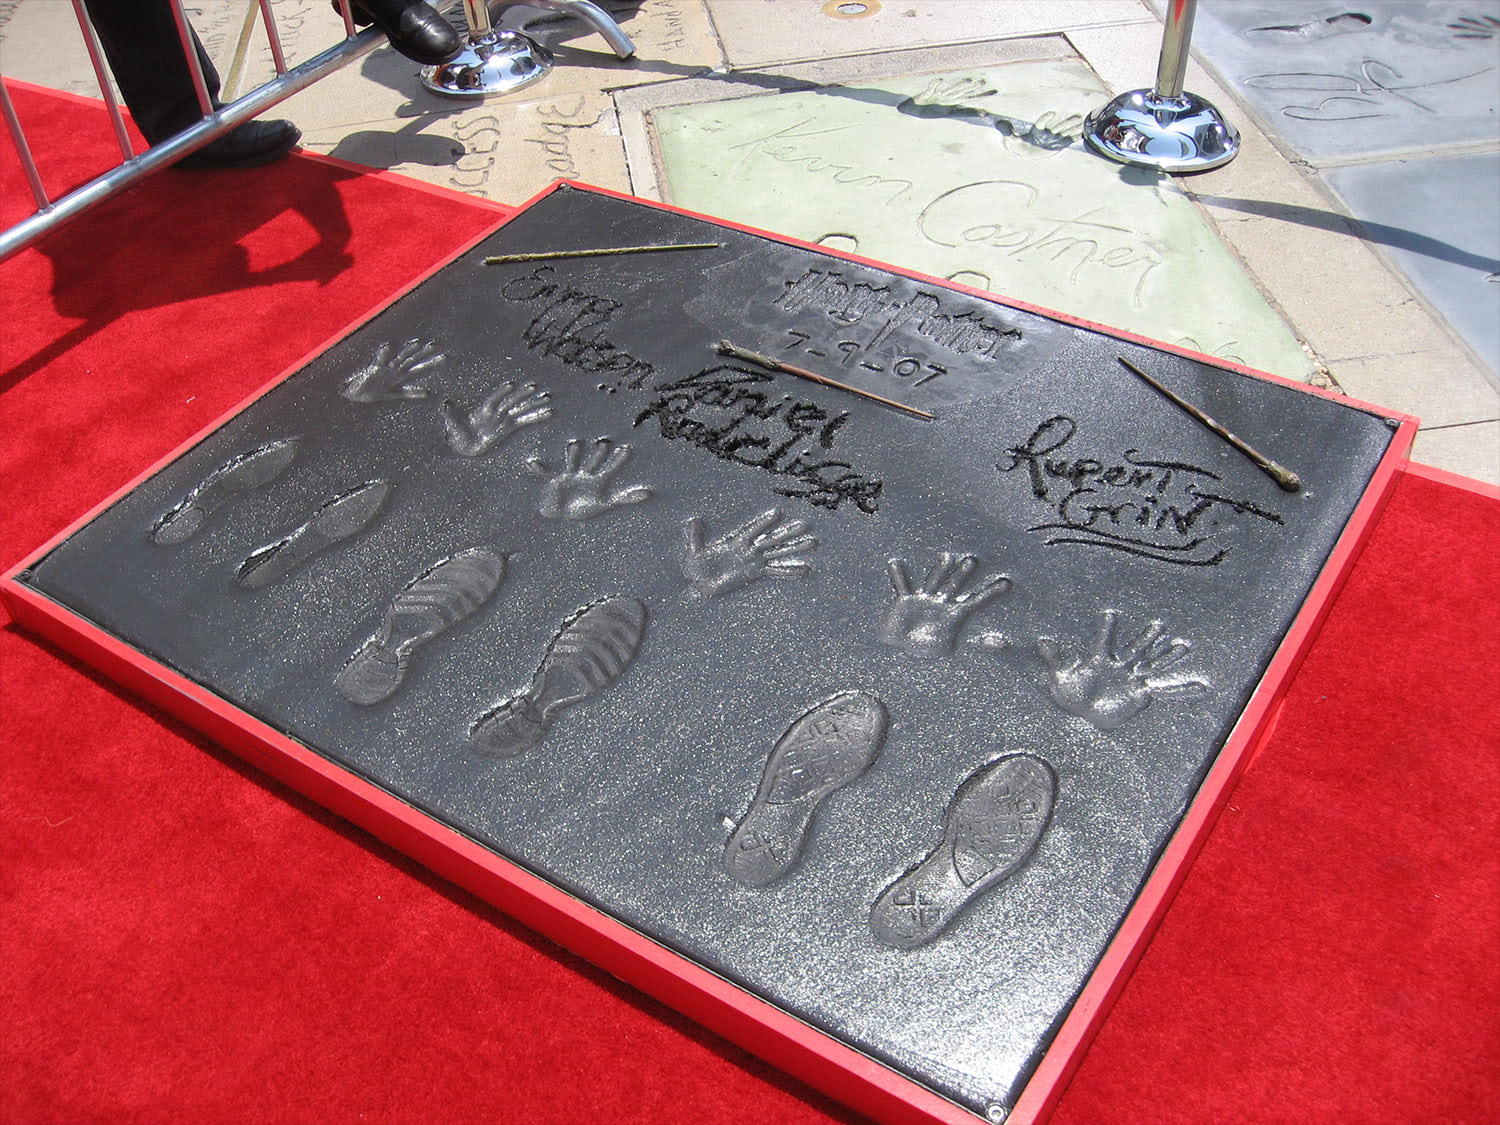 Dan, Rupert and Emma imprint their hands, feet and wands in concrete